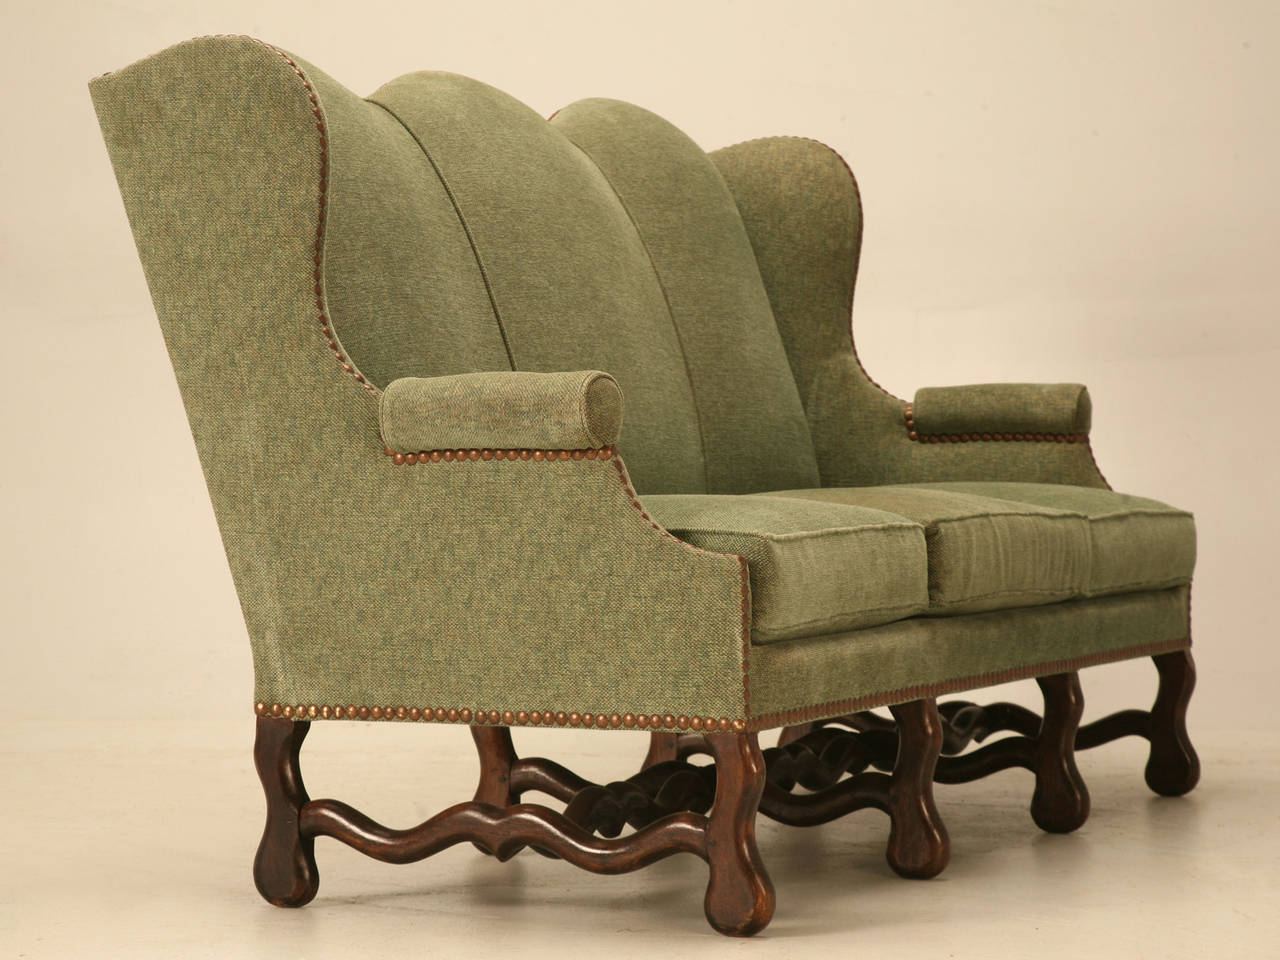 Vintage French Os De Mouton Style Small Sofa or Settee For Sale 4